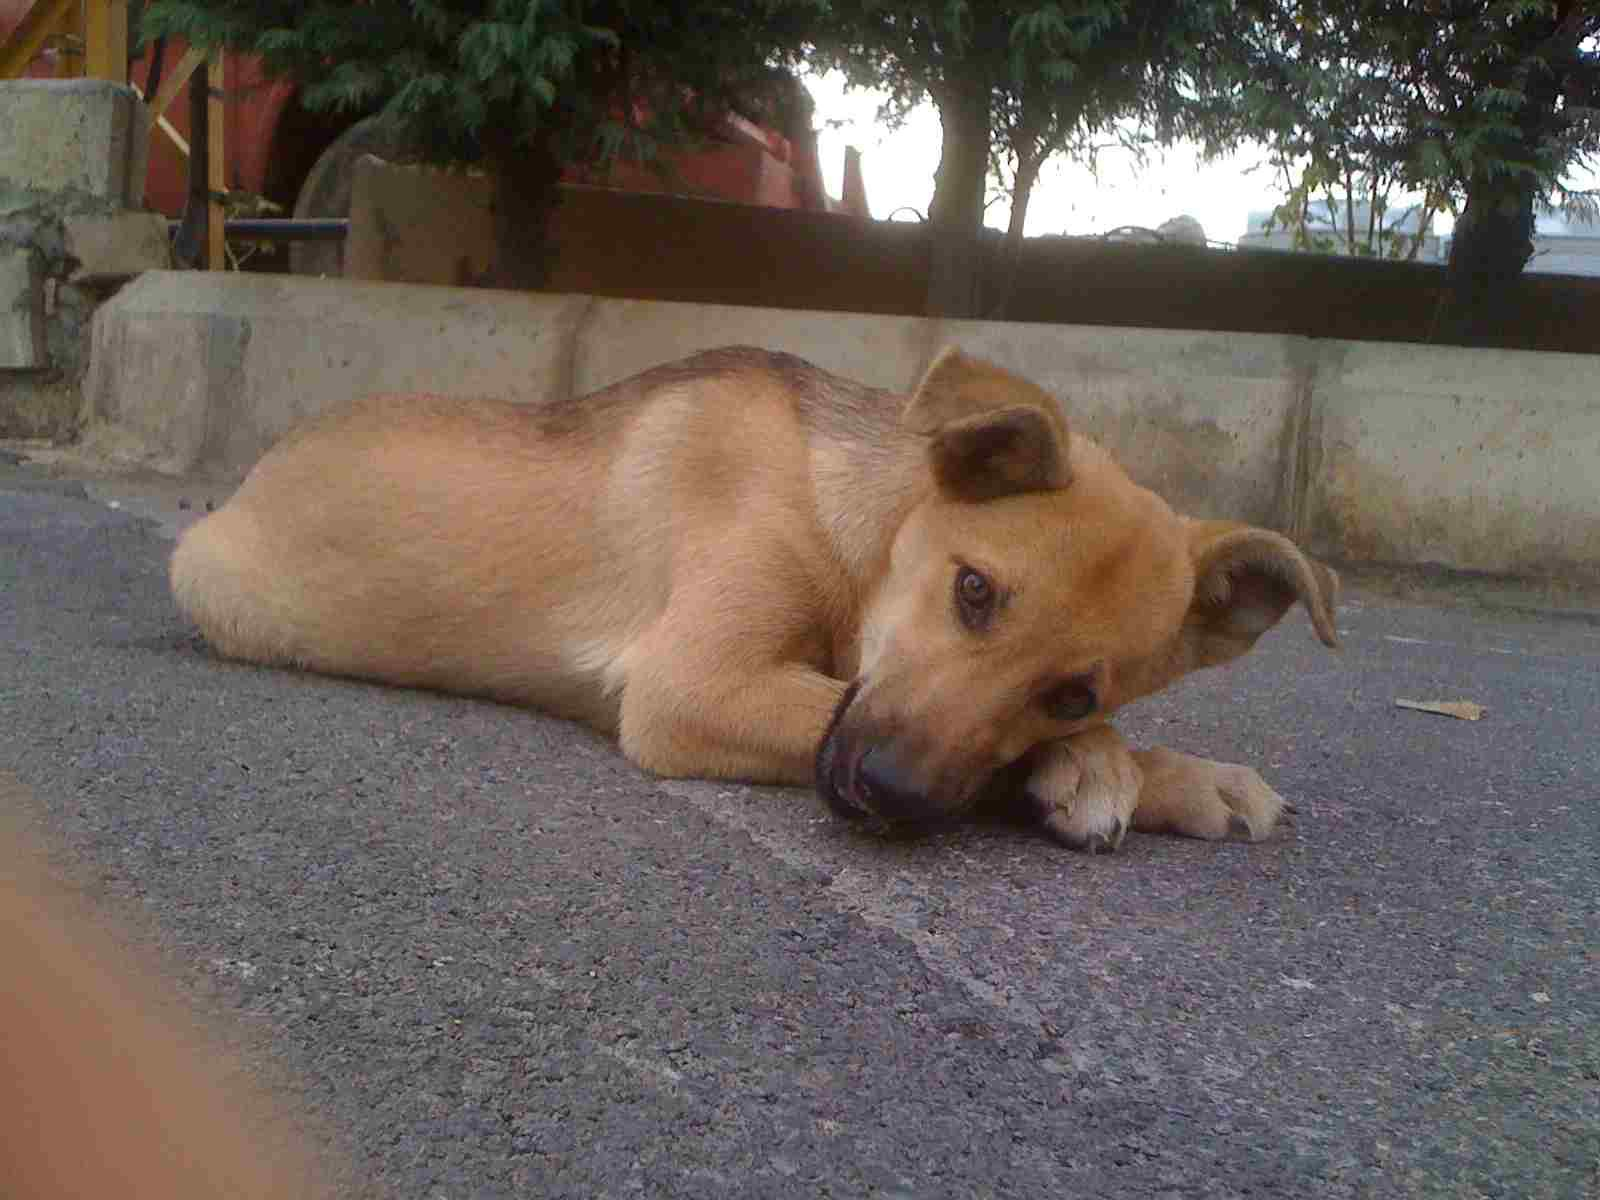 Stray Dogs Shot Dead in Lebanon